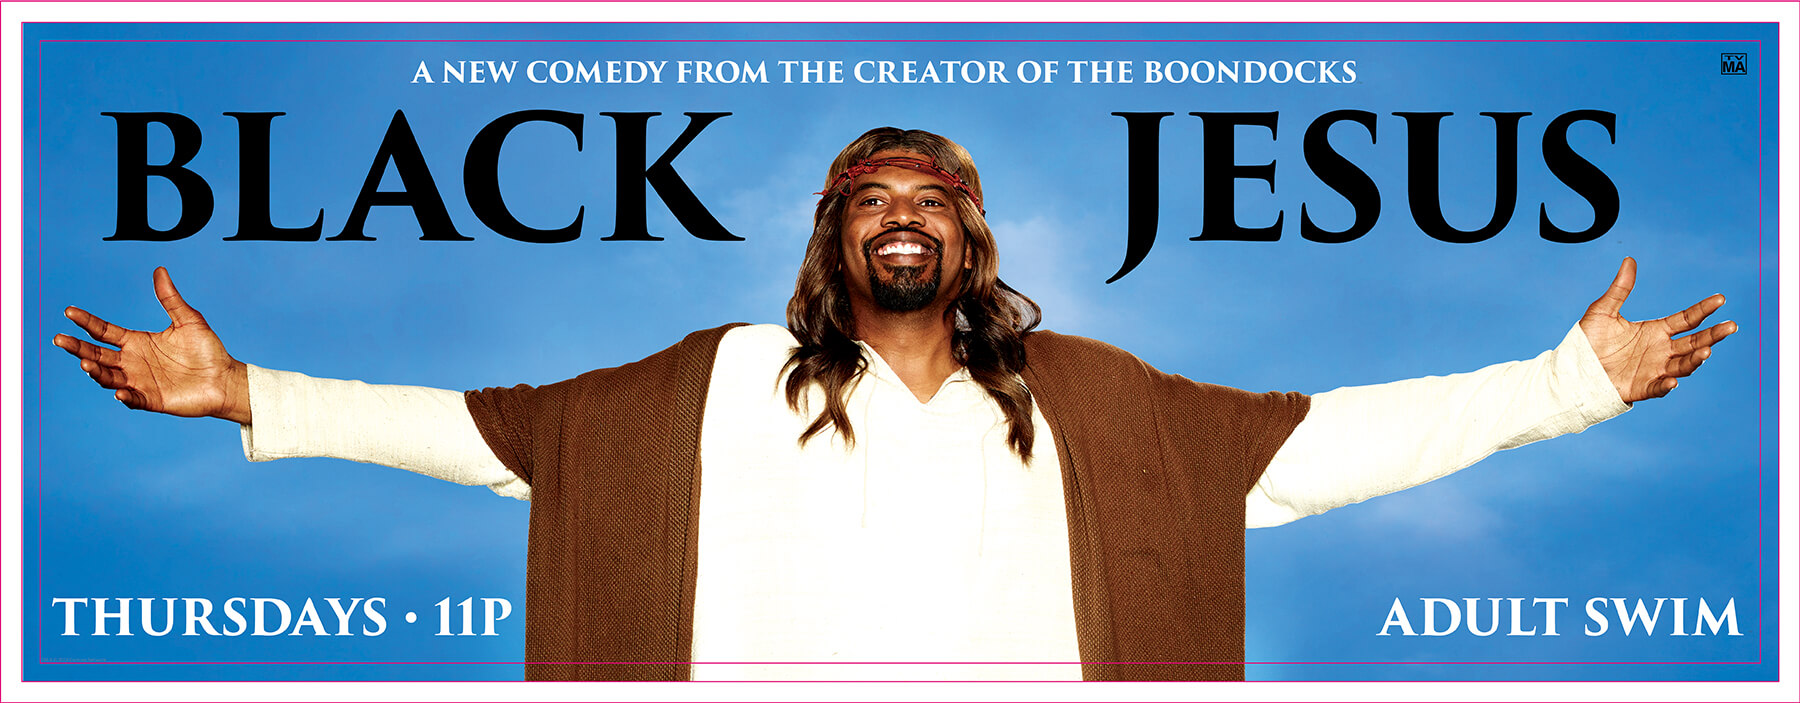 LA - BlackJesus billboard 48 x 18_2.jpg